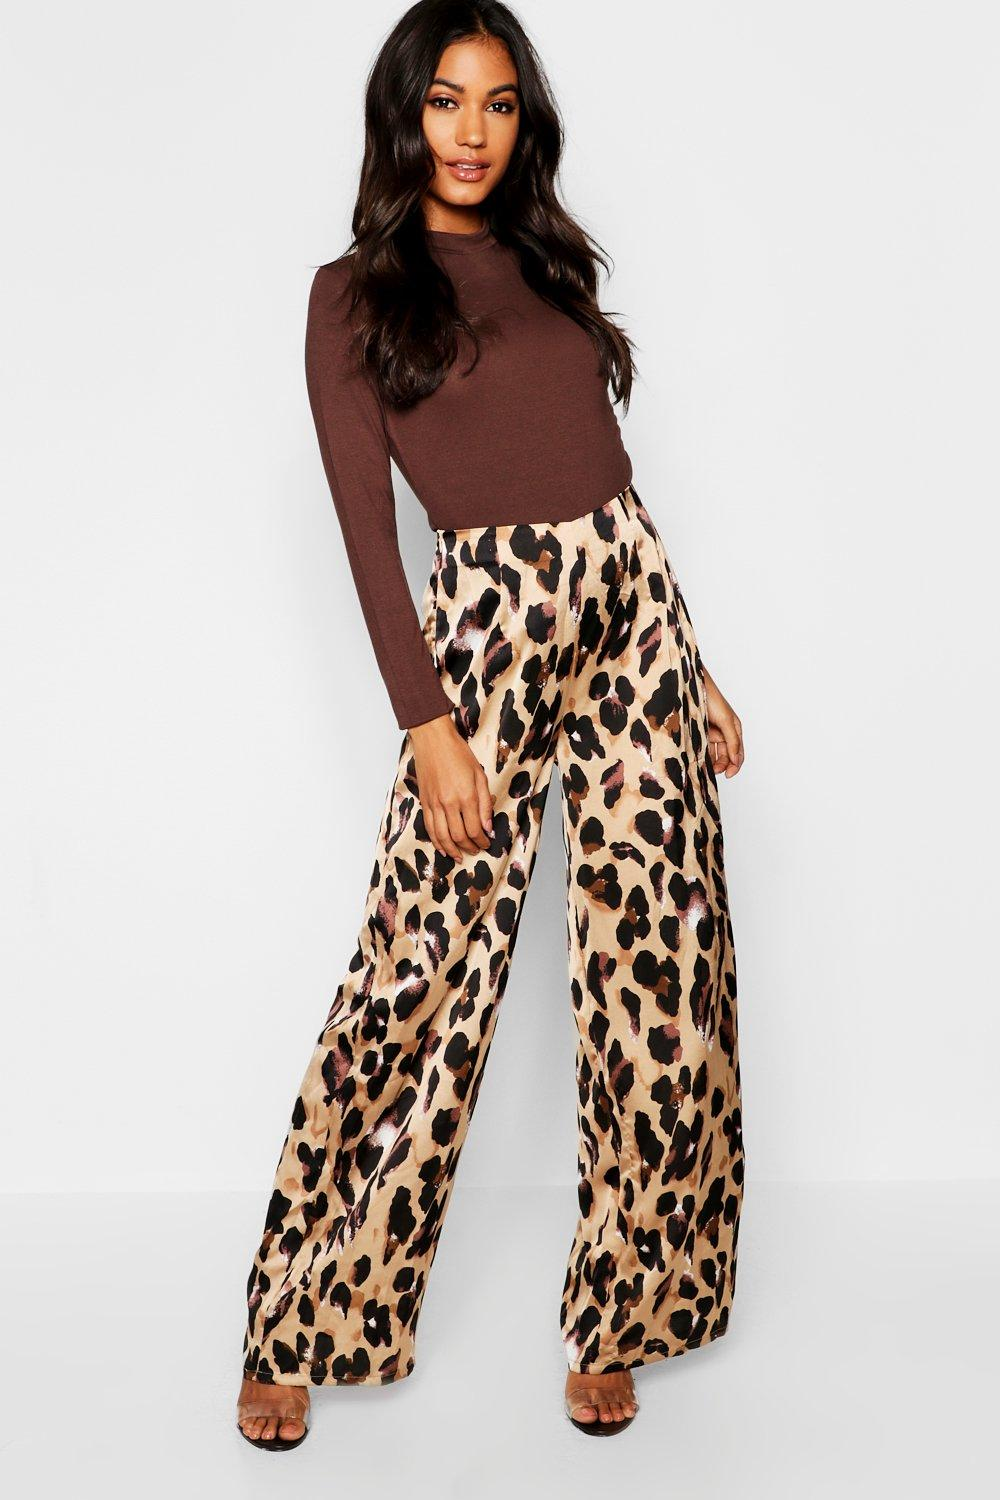 70a3b1ad76d7 Womens Stone Satin Leopard Print Wide Leg Pants. Hover to zoom